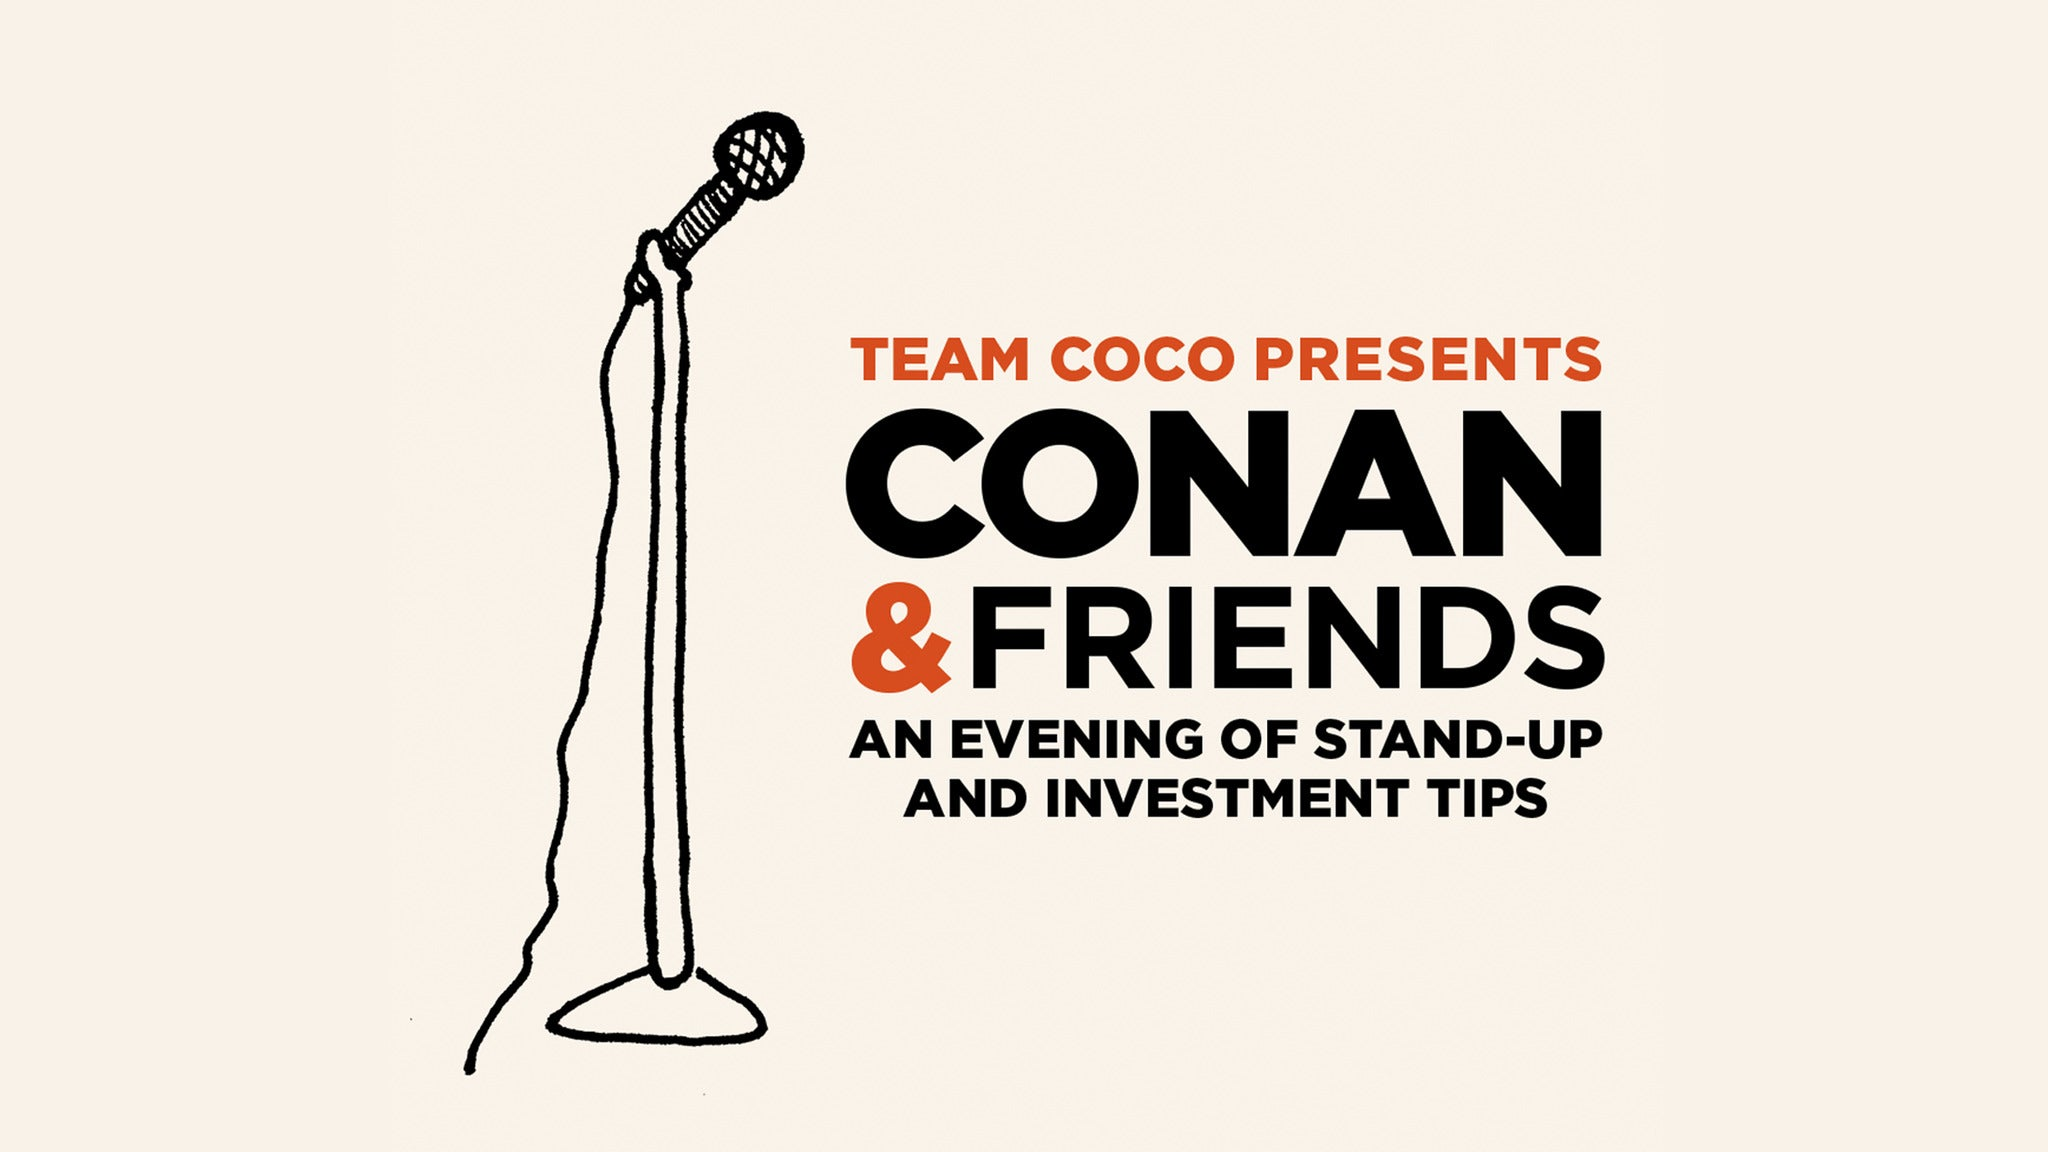 Team Coco Presents Conan & Friends at The Masonic